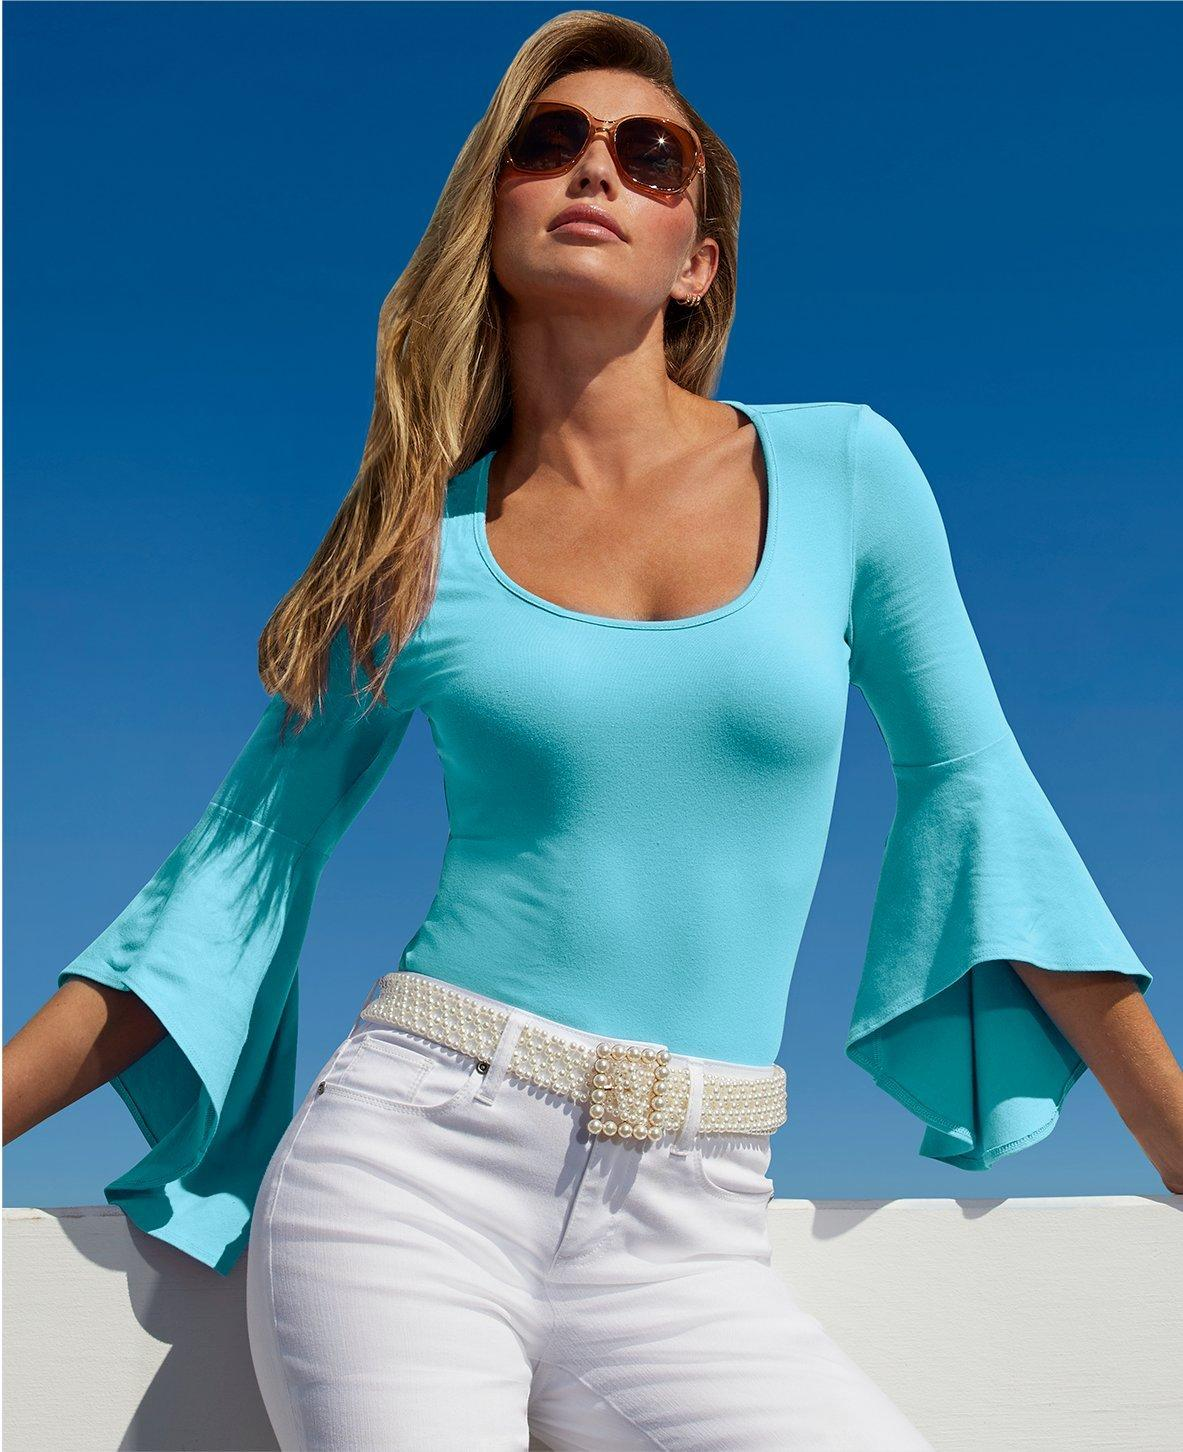 model wearing a light blue flare sleeved top, pearl belt, sunglasses, and white jeans.